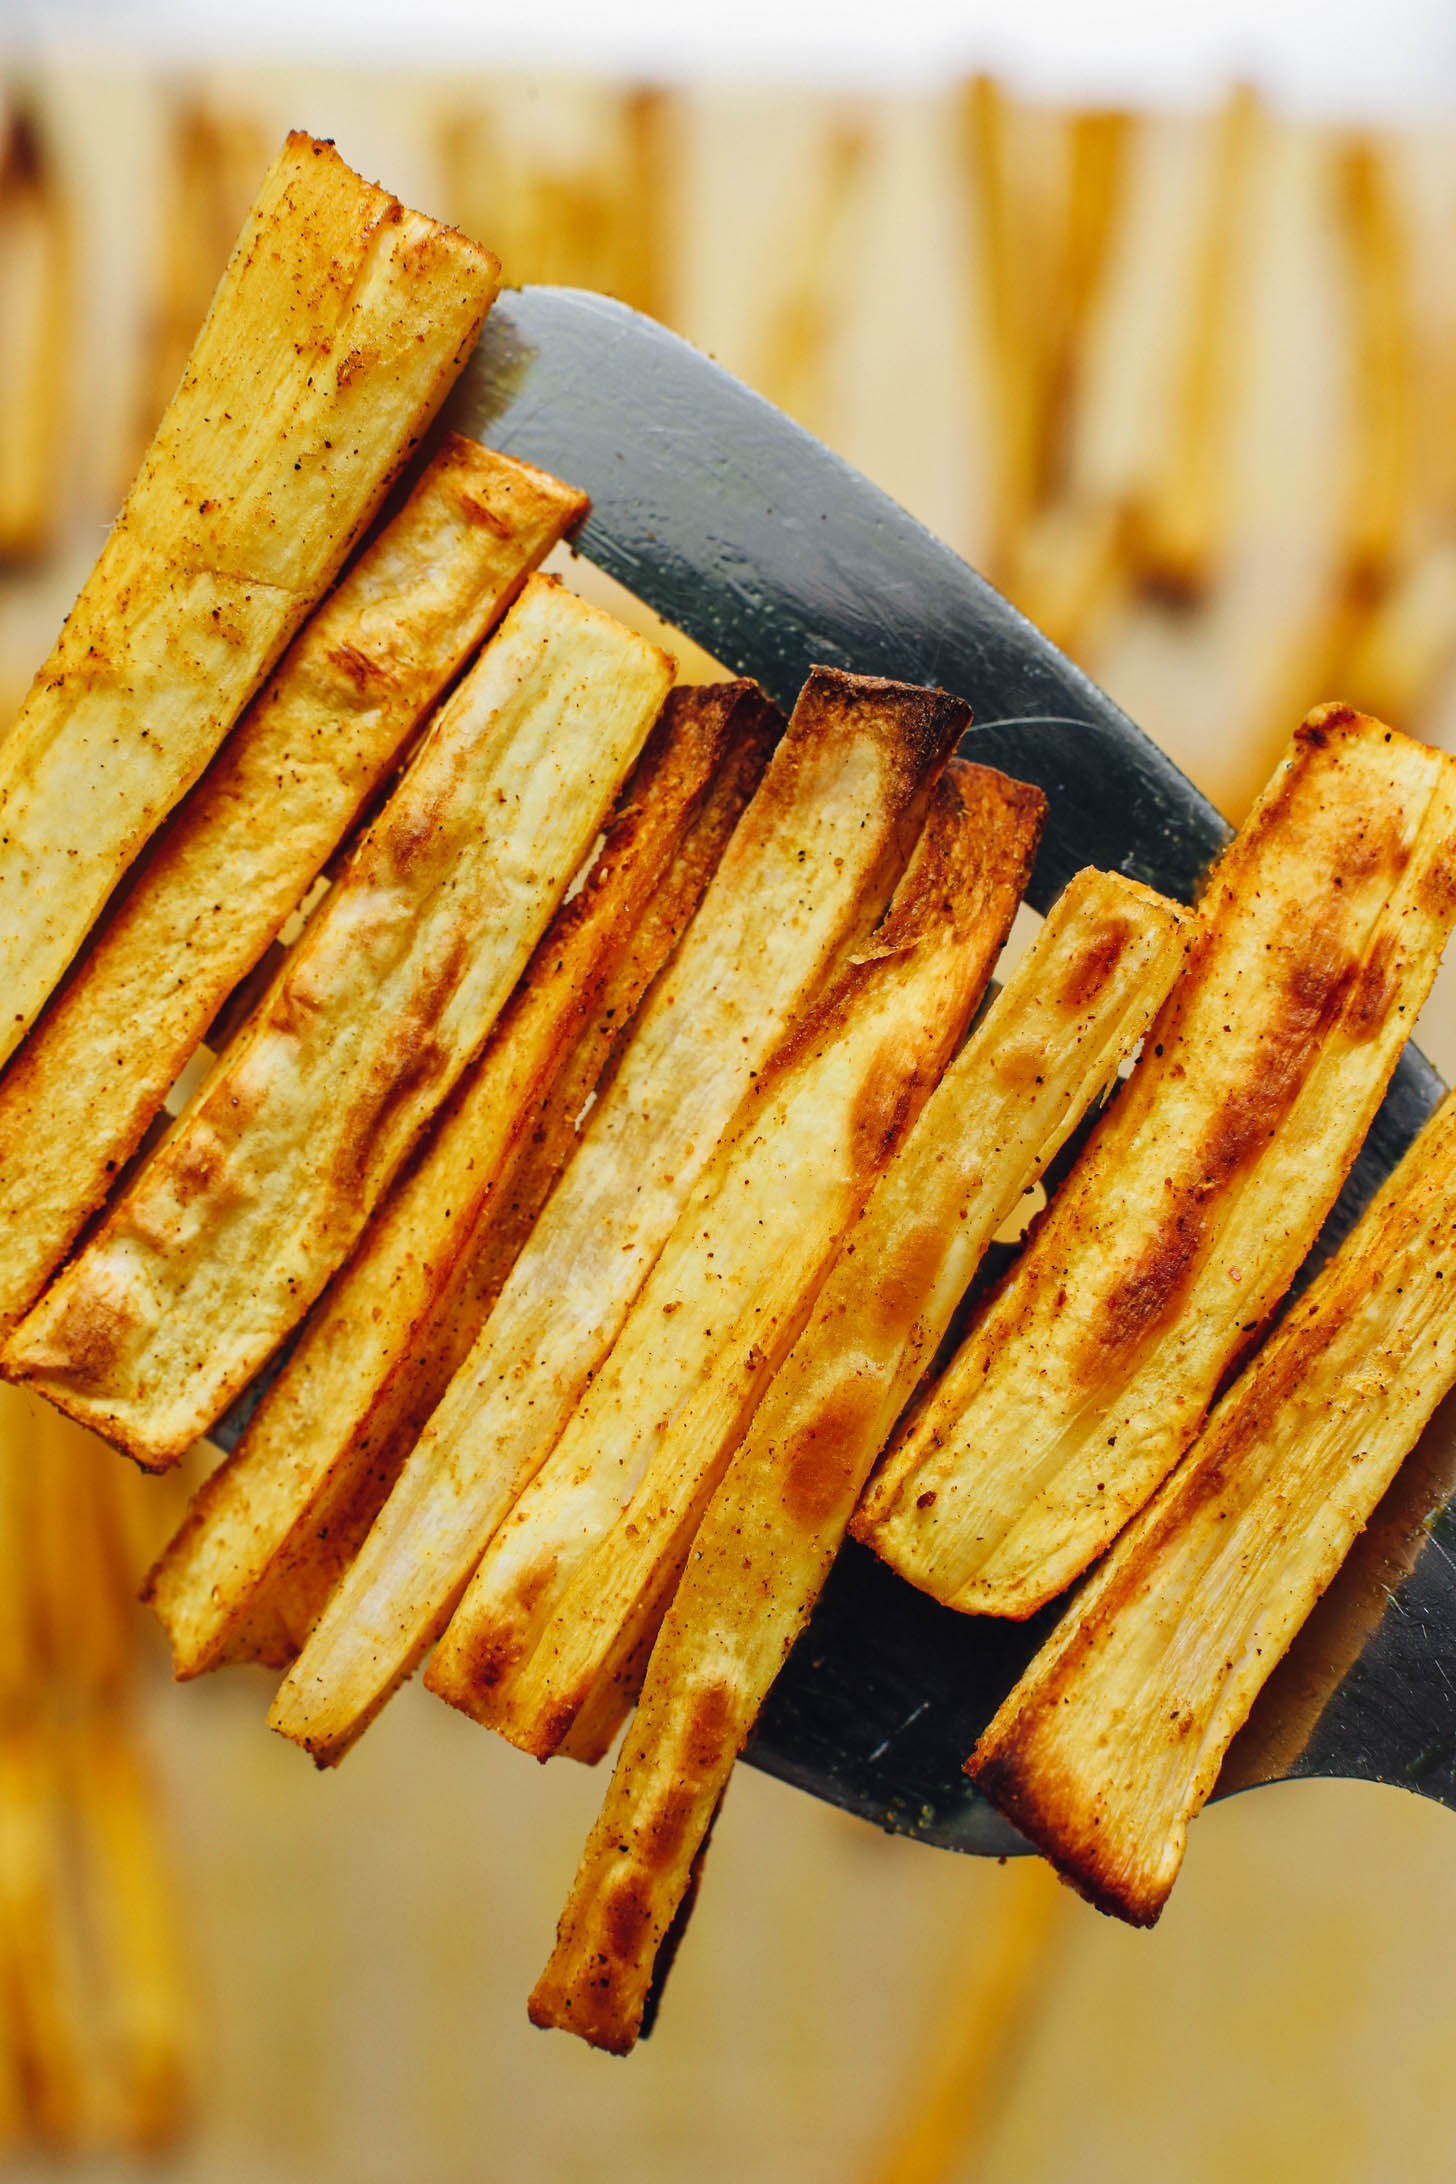 Holding up a spatula of perfectly roasted parsnip fries